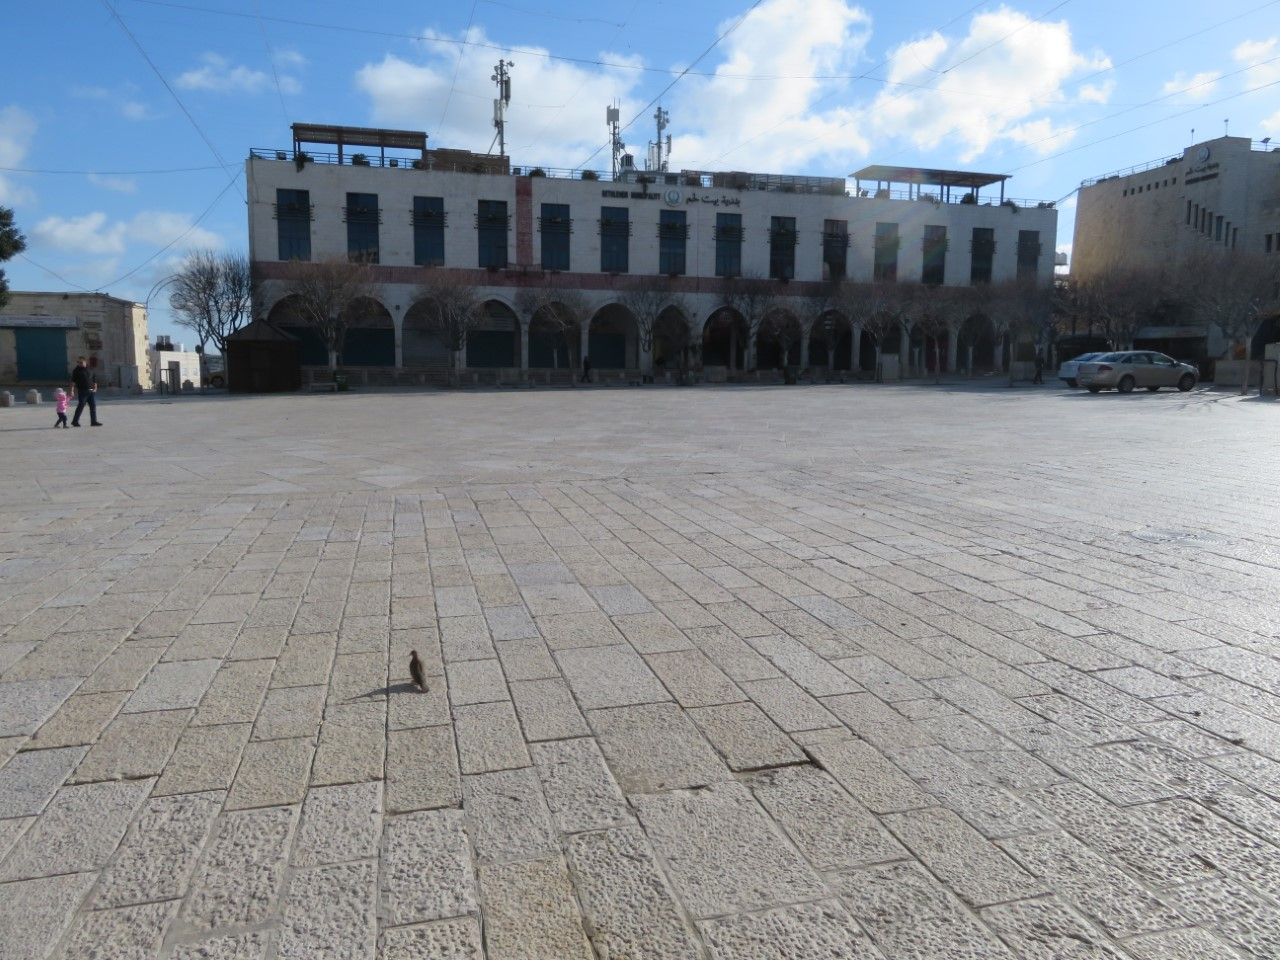 An unusually empty Manger Square in Bethlehem.